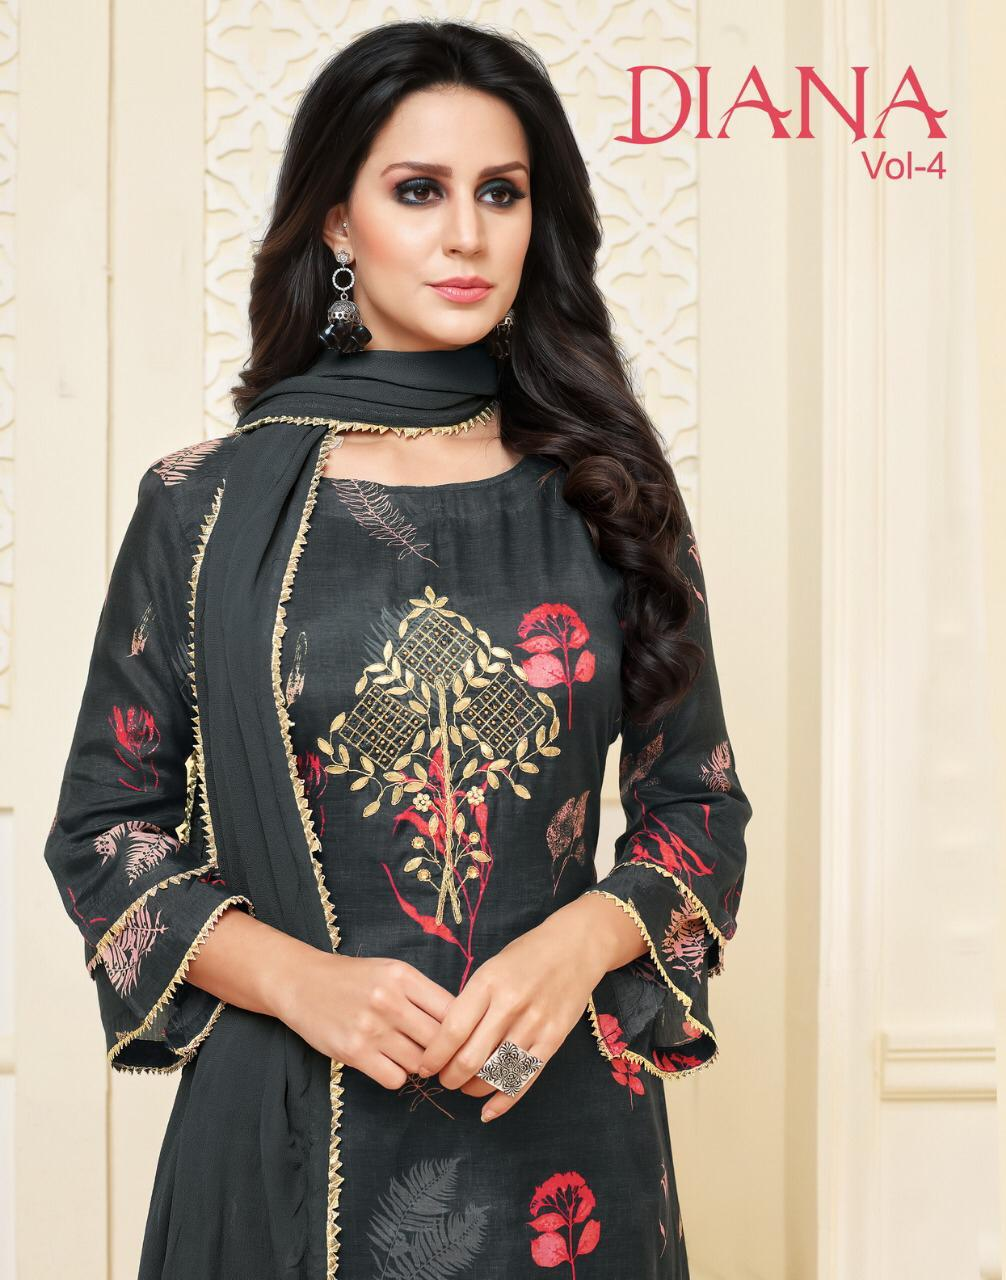 dacffe8da3 DIANA VOL-4 BY ANGROOP PLUS 054 TO 064 SERIES BEAUTIFUL SUITS ...